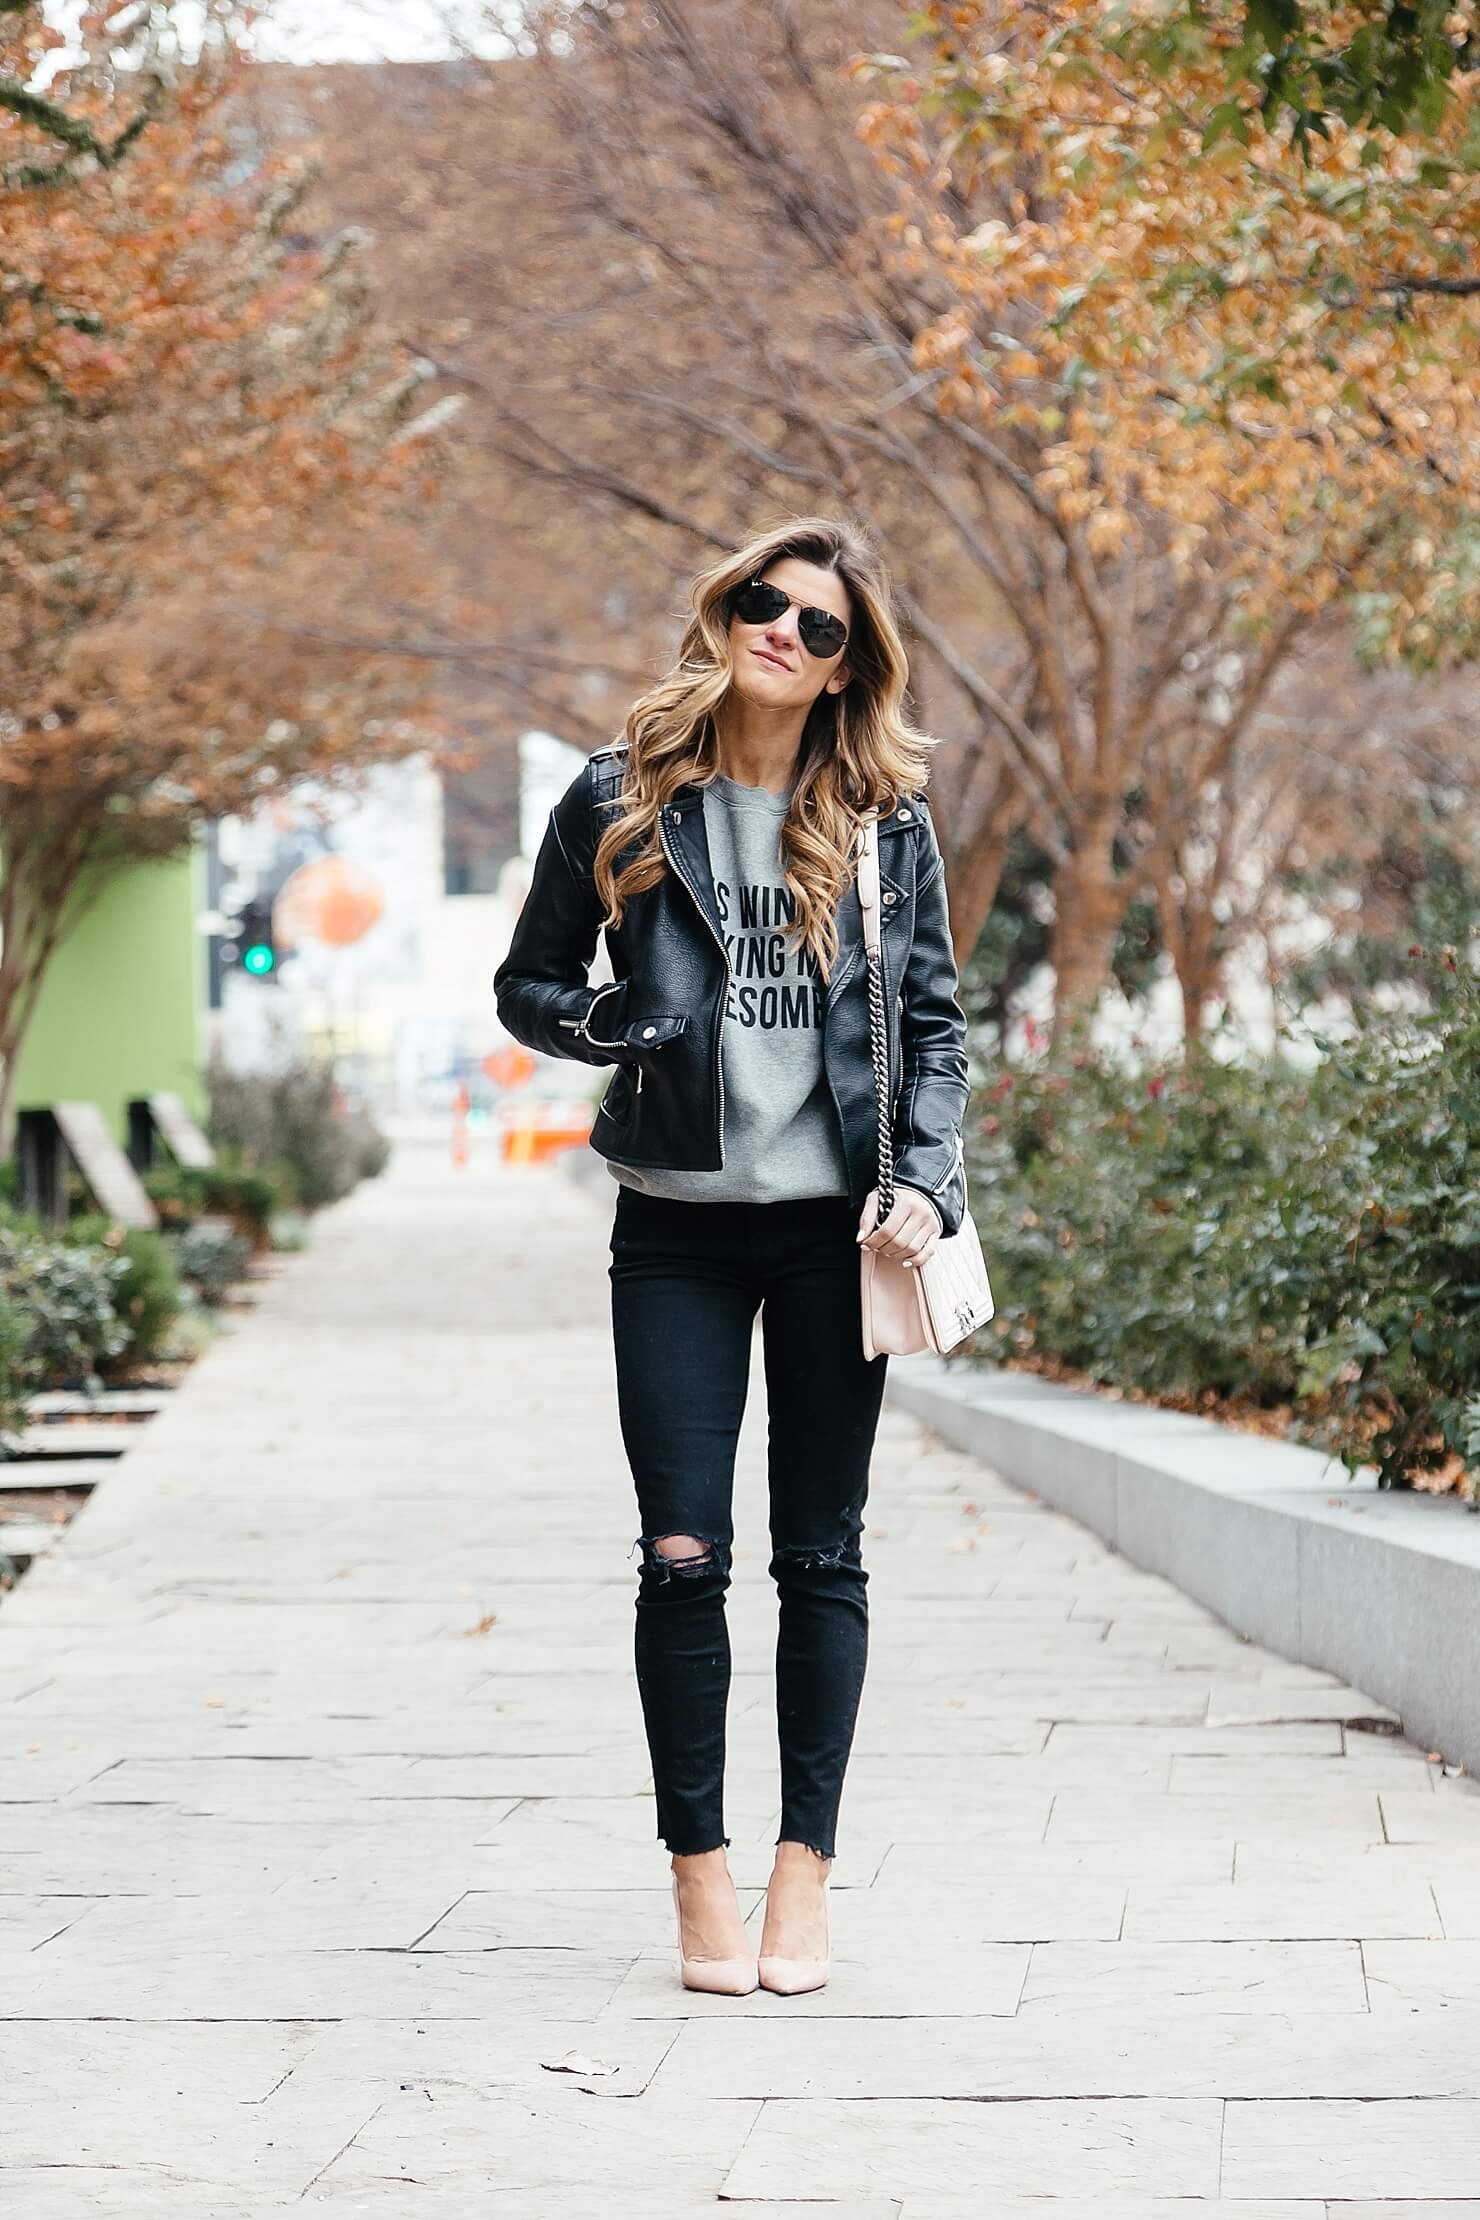 moto jacket outfit, dressing up a sweatshirt, all black outfit with pink